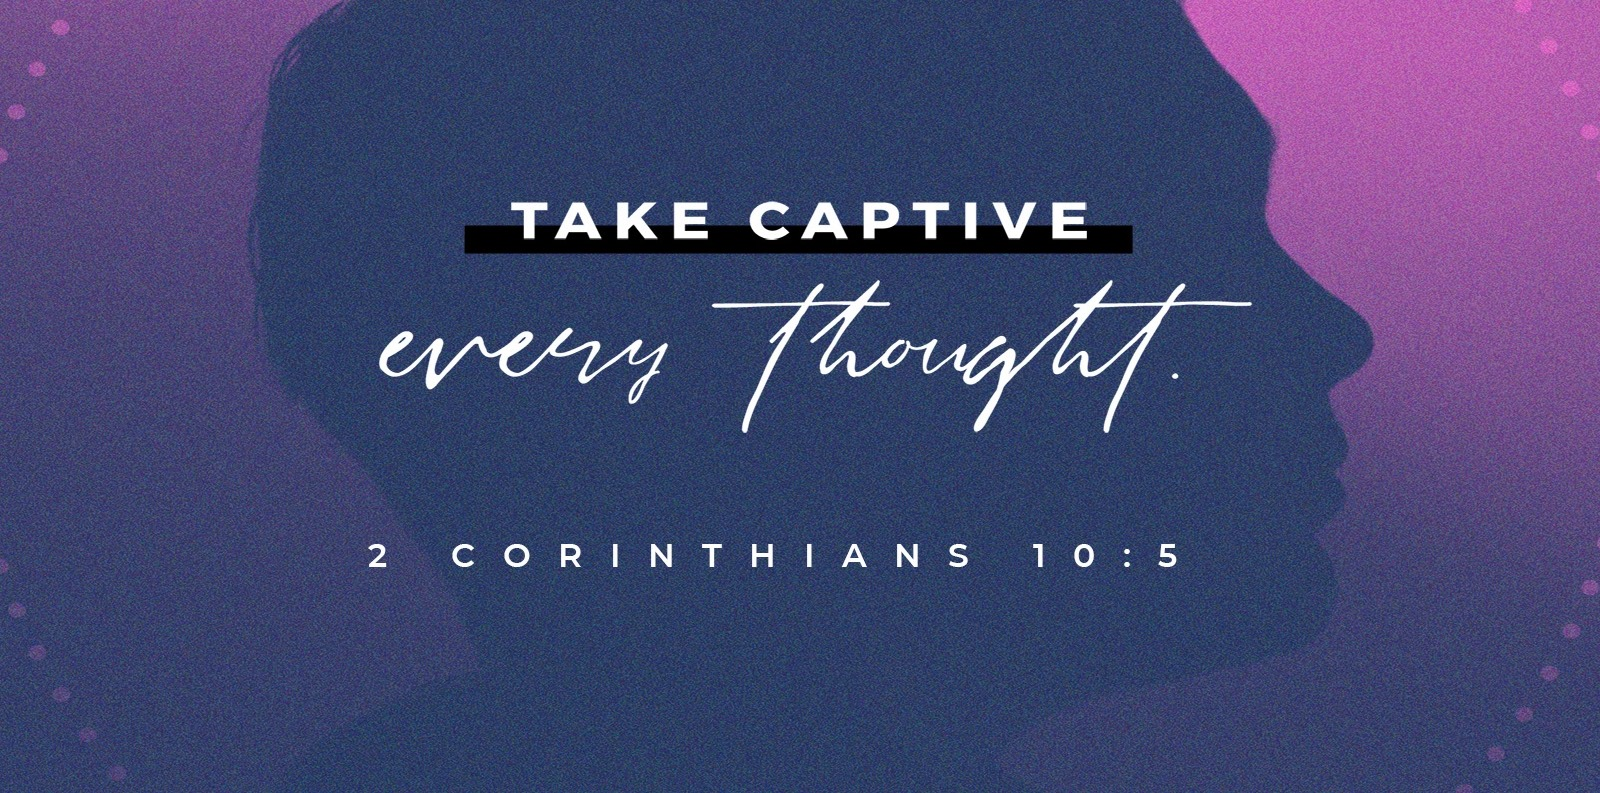 June 3: Take Captive Every Thought, Pt. 10